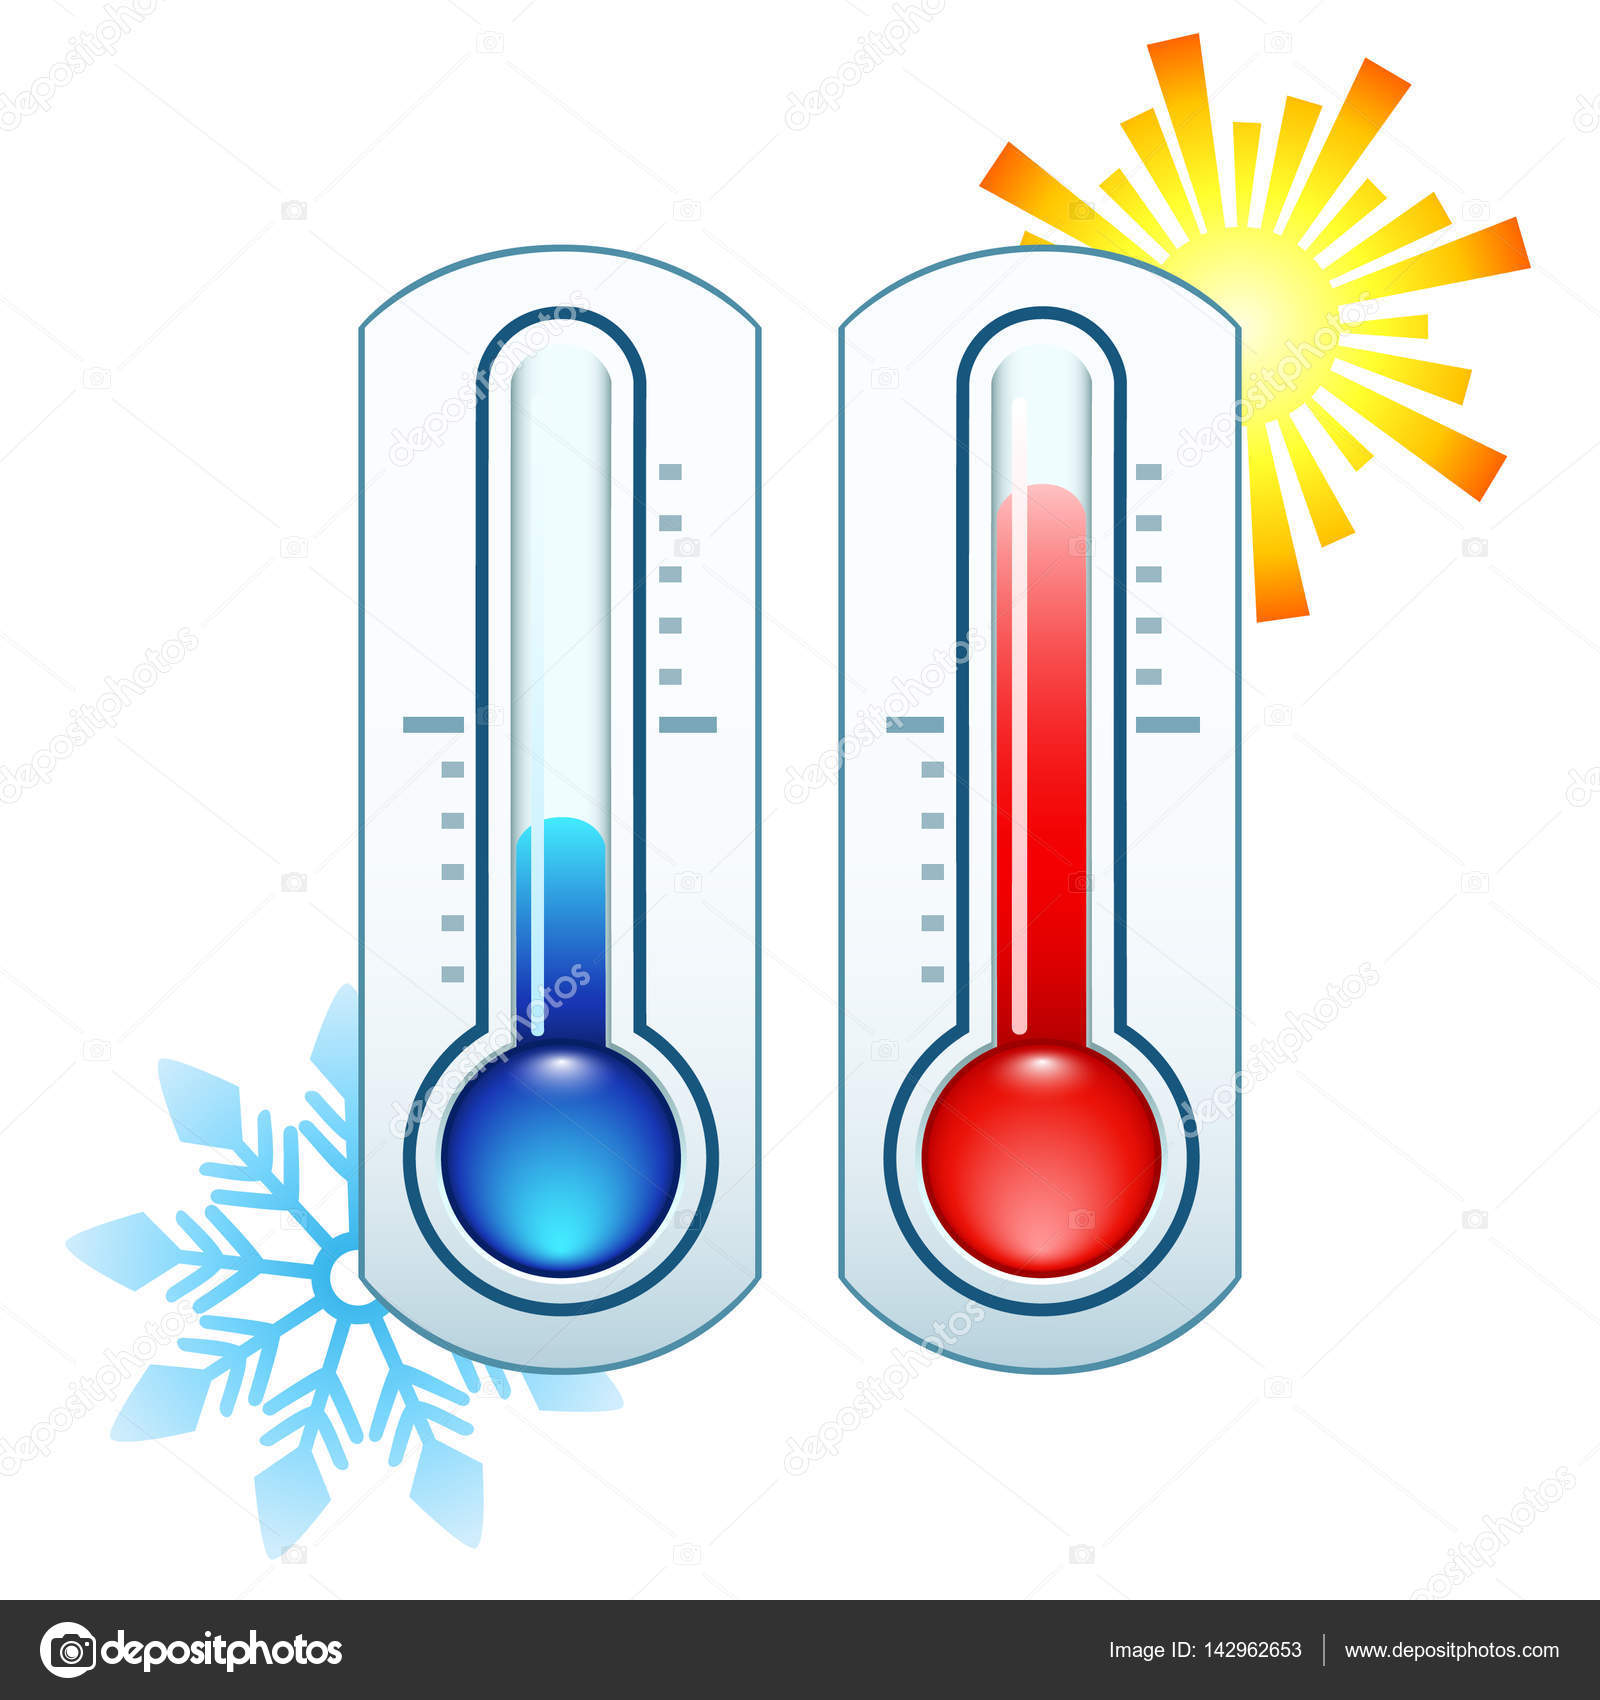 Thermometer Icon Measuring Hot And Cold Temperature